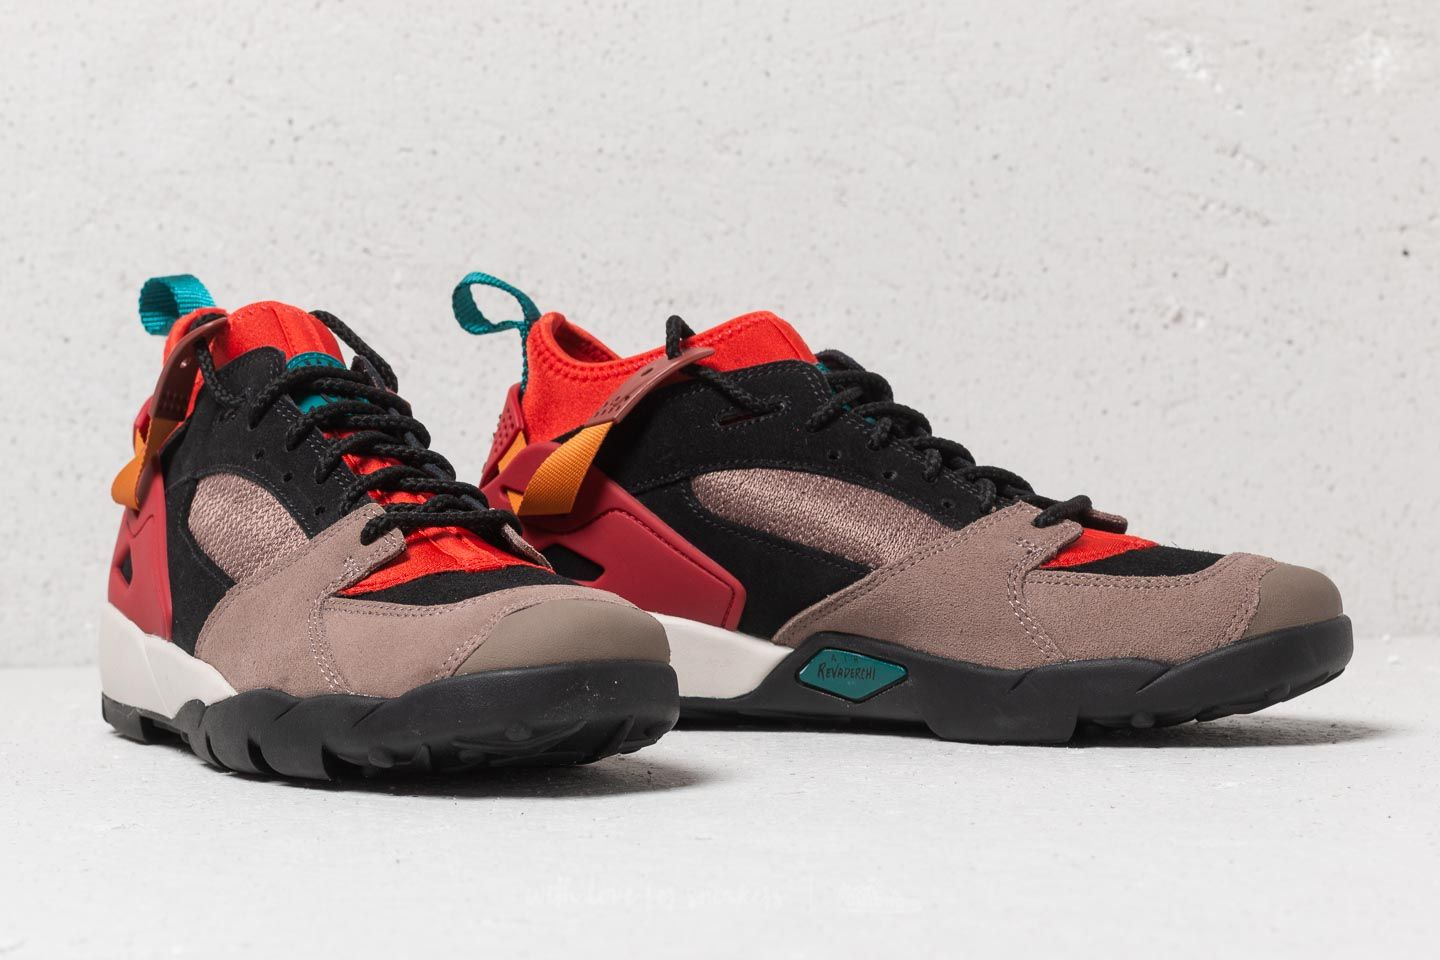 b2104c0ec06 Nike ACG Air Revaderchi Gym Red/ Geode Teal | Footshop